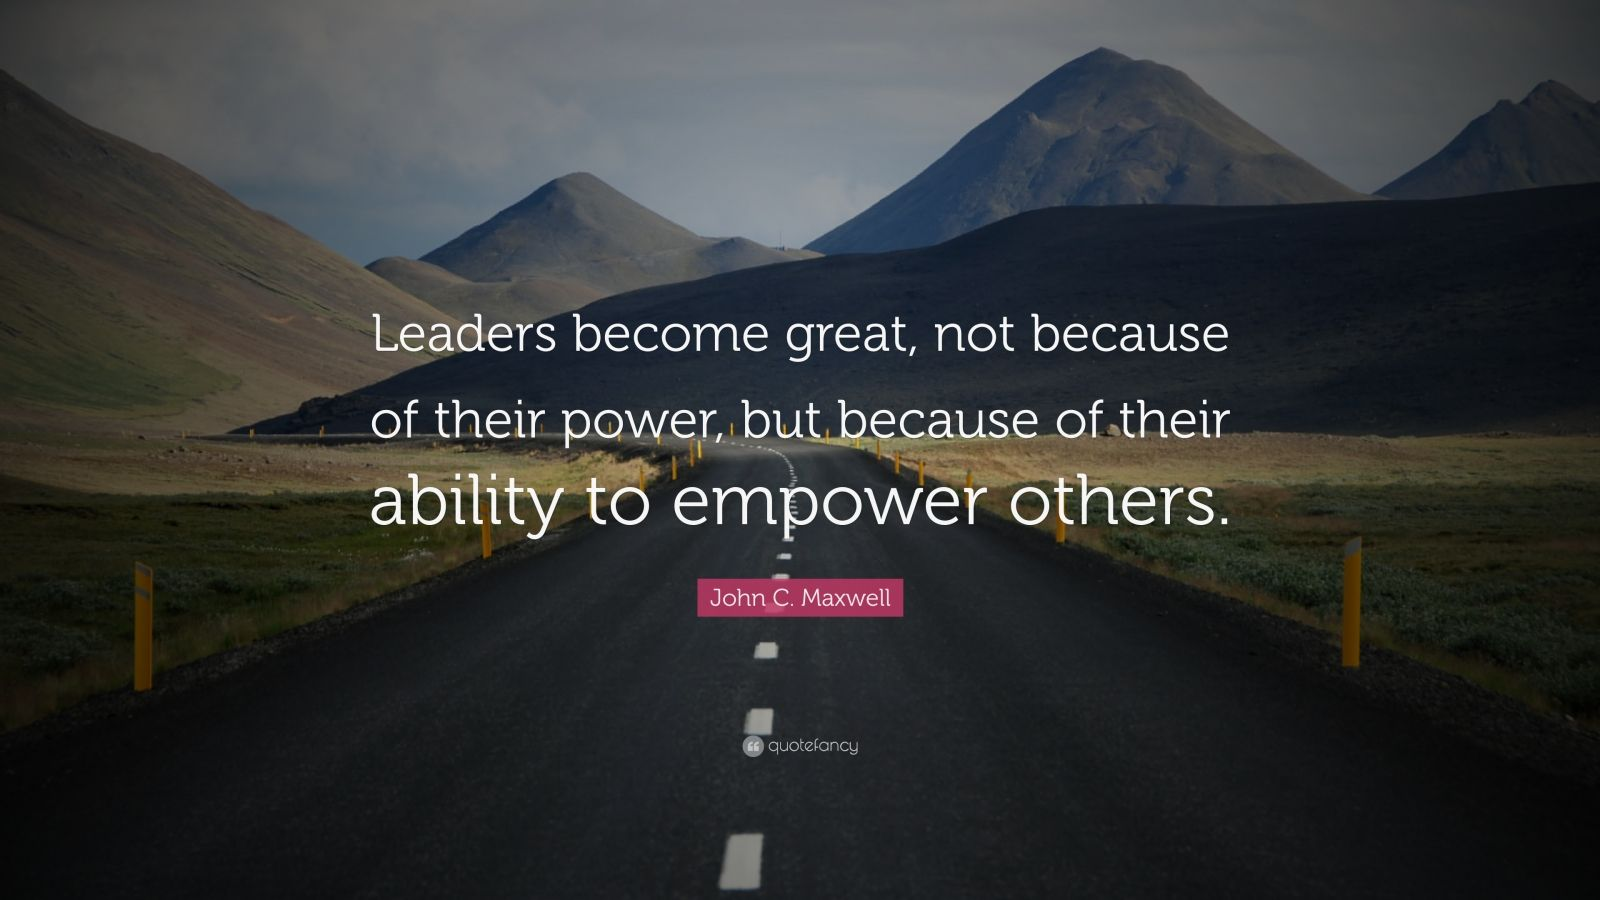 What Makes a Leader: The Ability to Empower Others